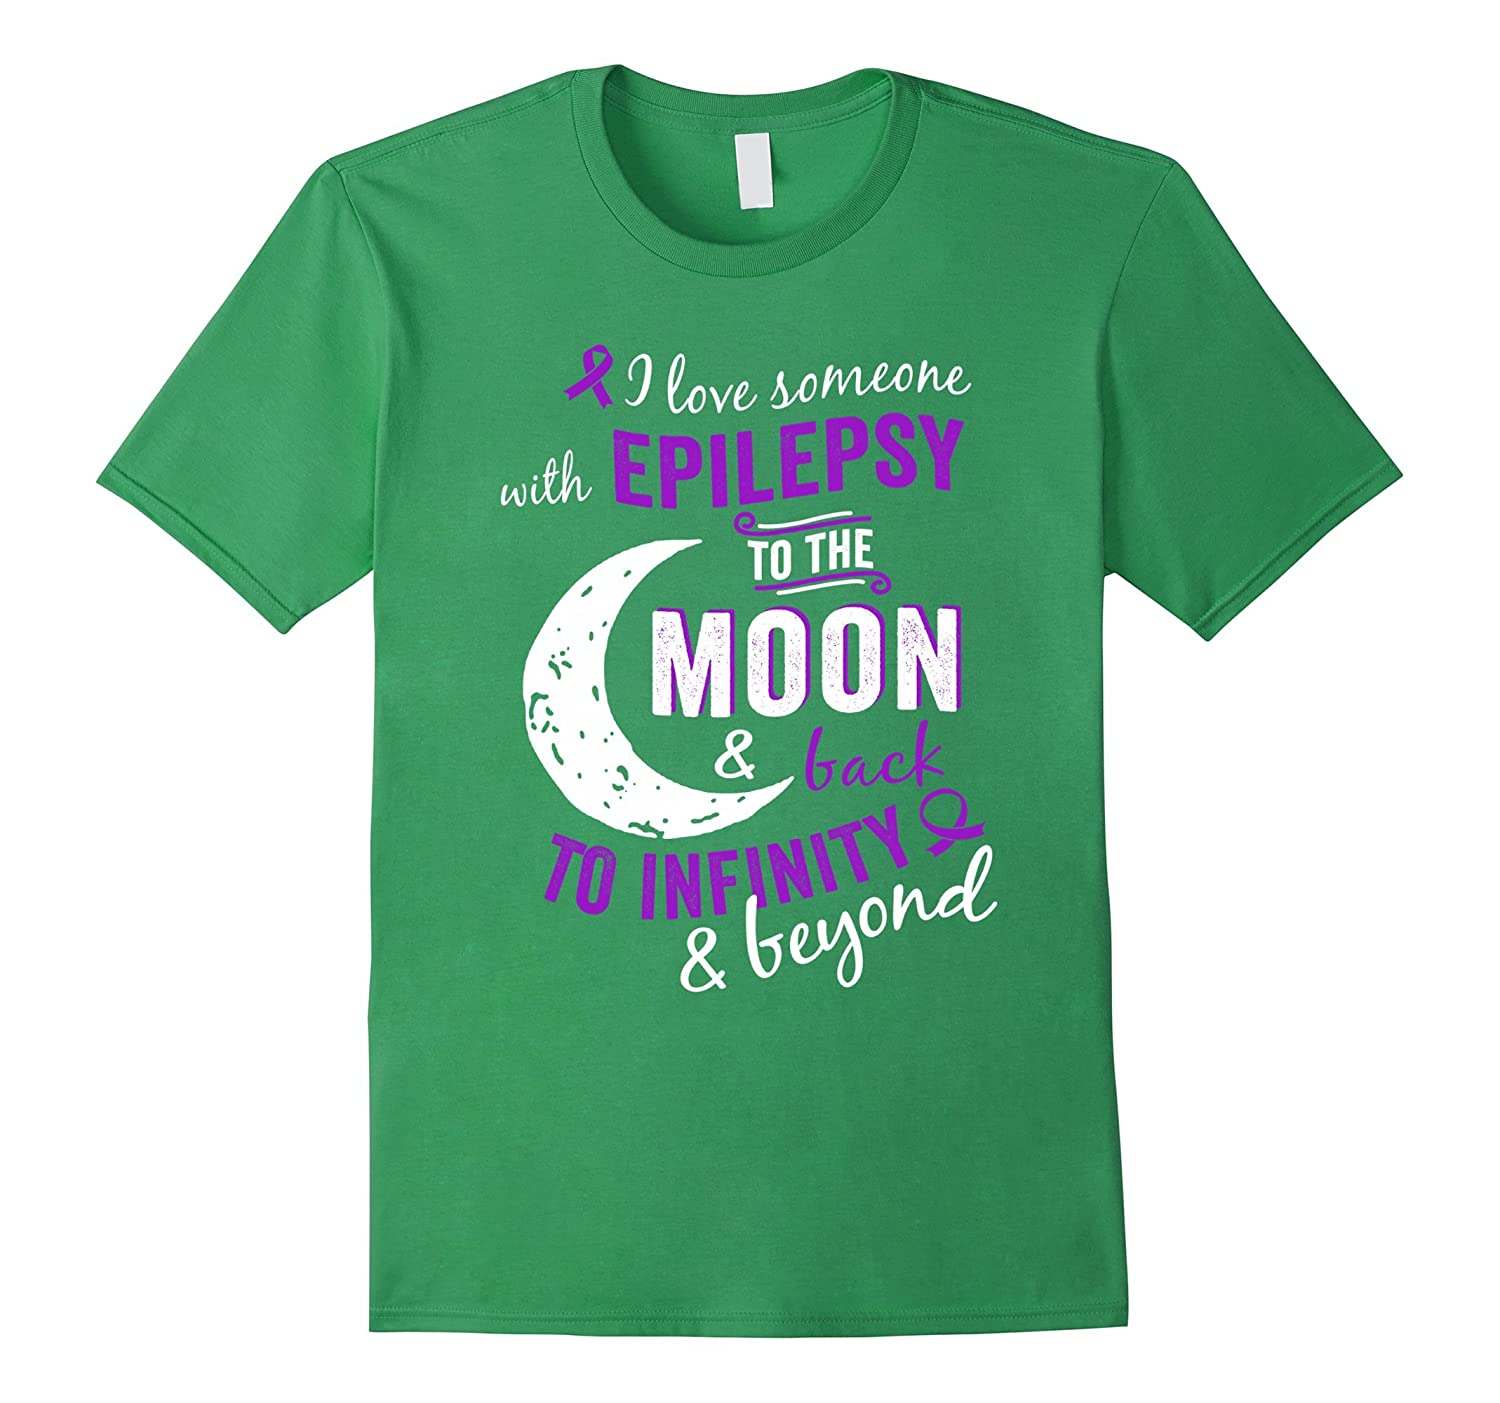 Epilepsy Awareness Shirts - Epilepsy Awareness Products